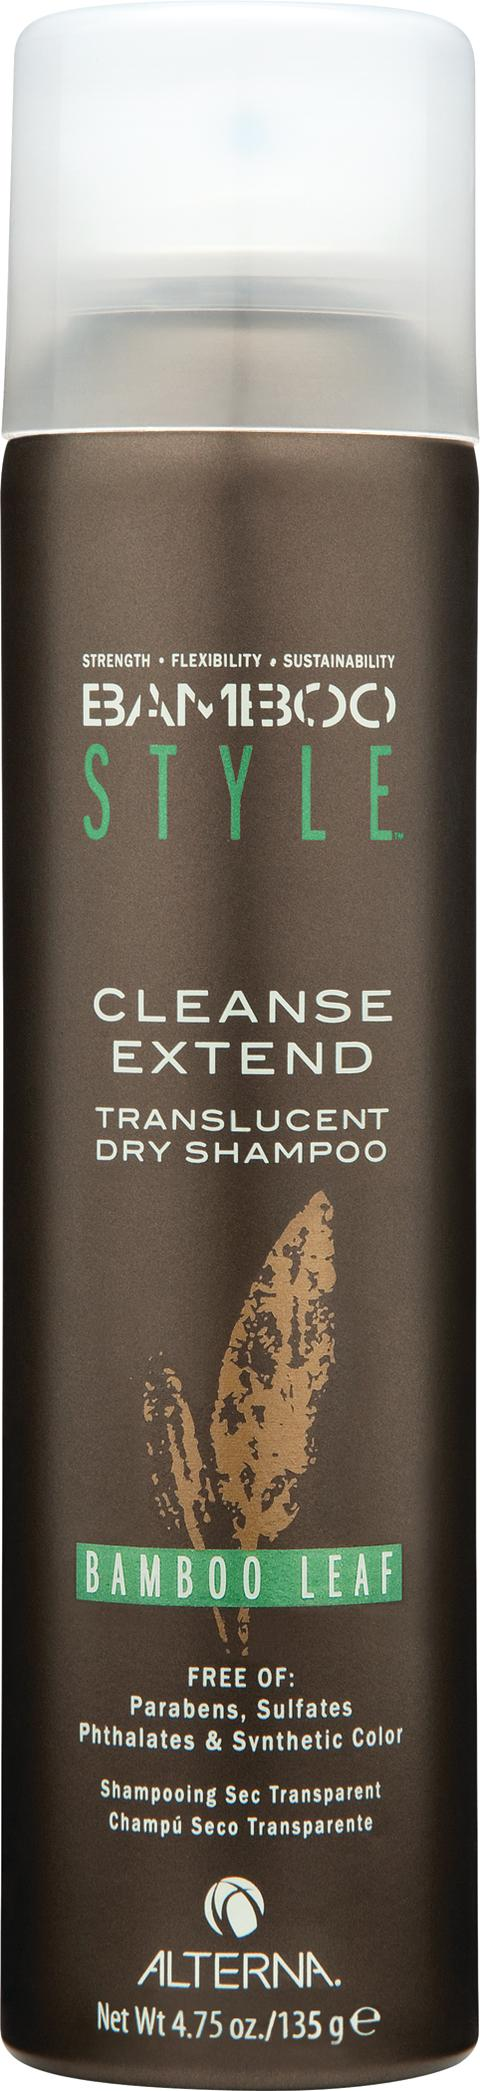 Alterna Bamboo Style Cleanse extens dry shampoo